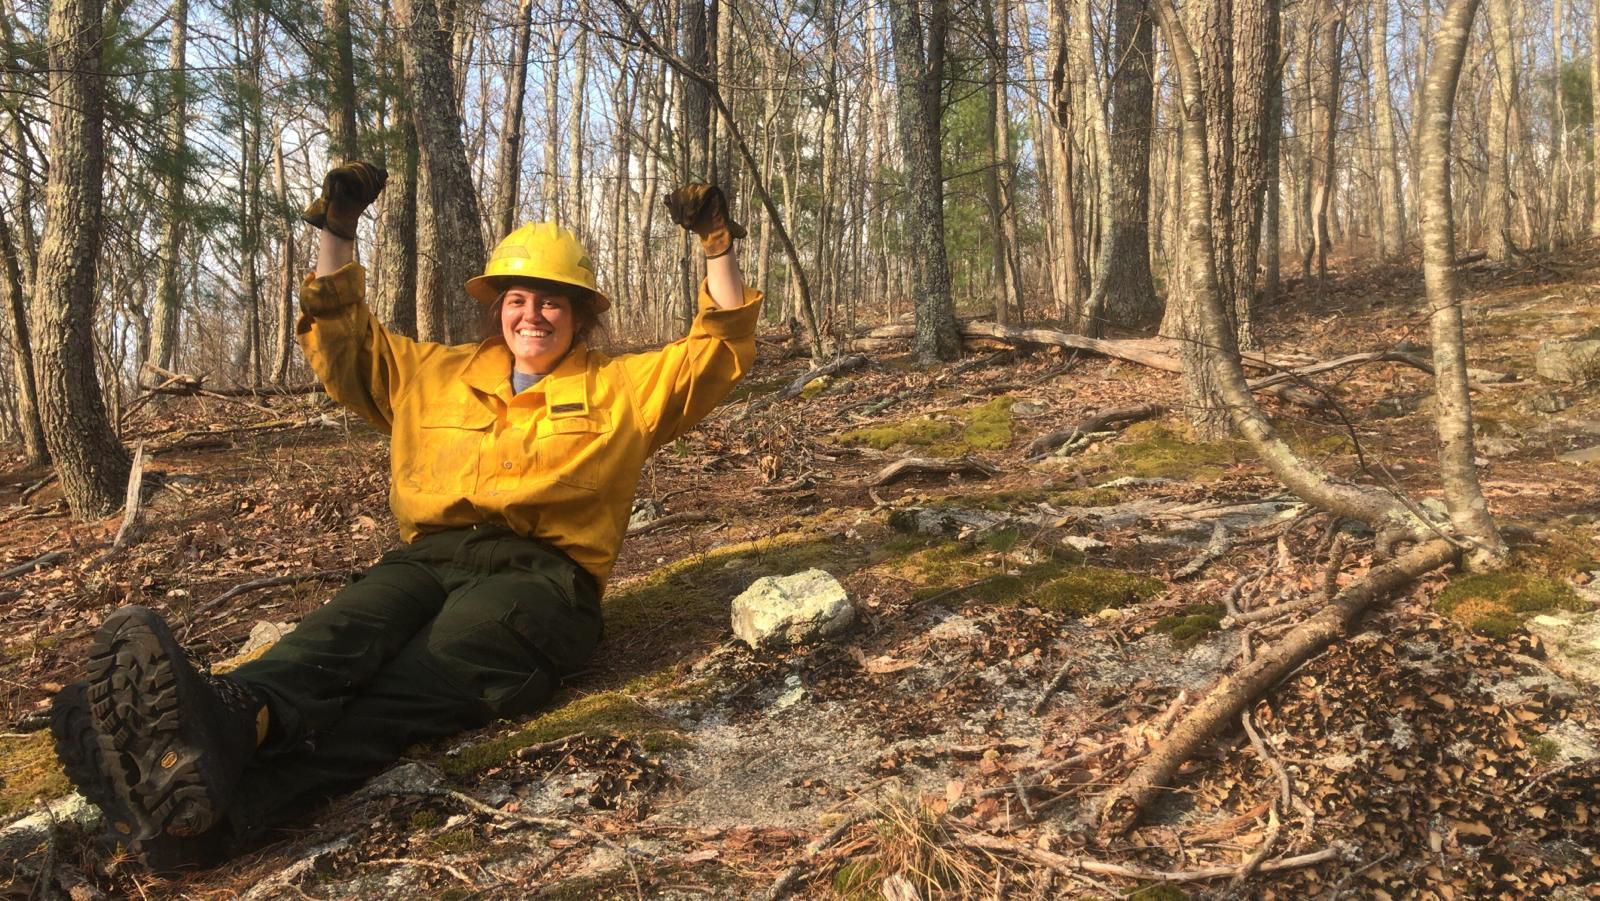 A woman wearing yellow fire gear sits on the ground in a forest. She is smiling and her arms are raised over her head in an expression of celebration.